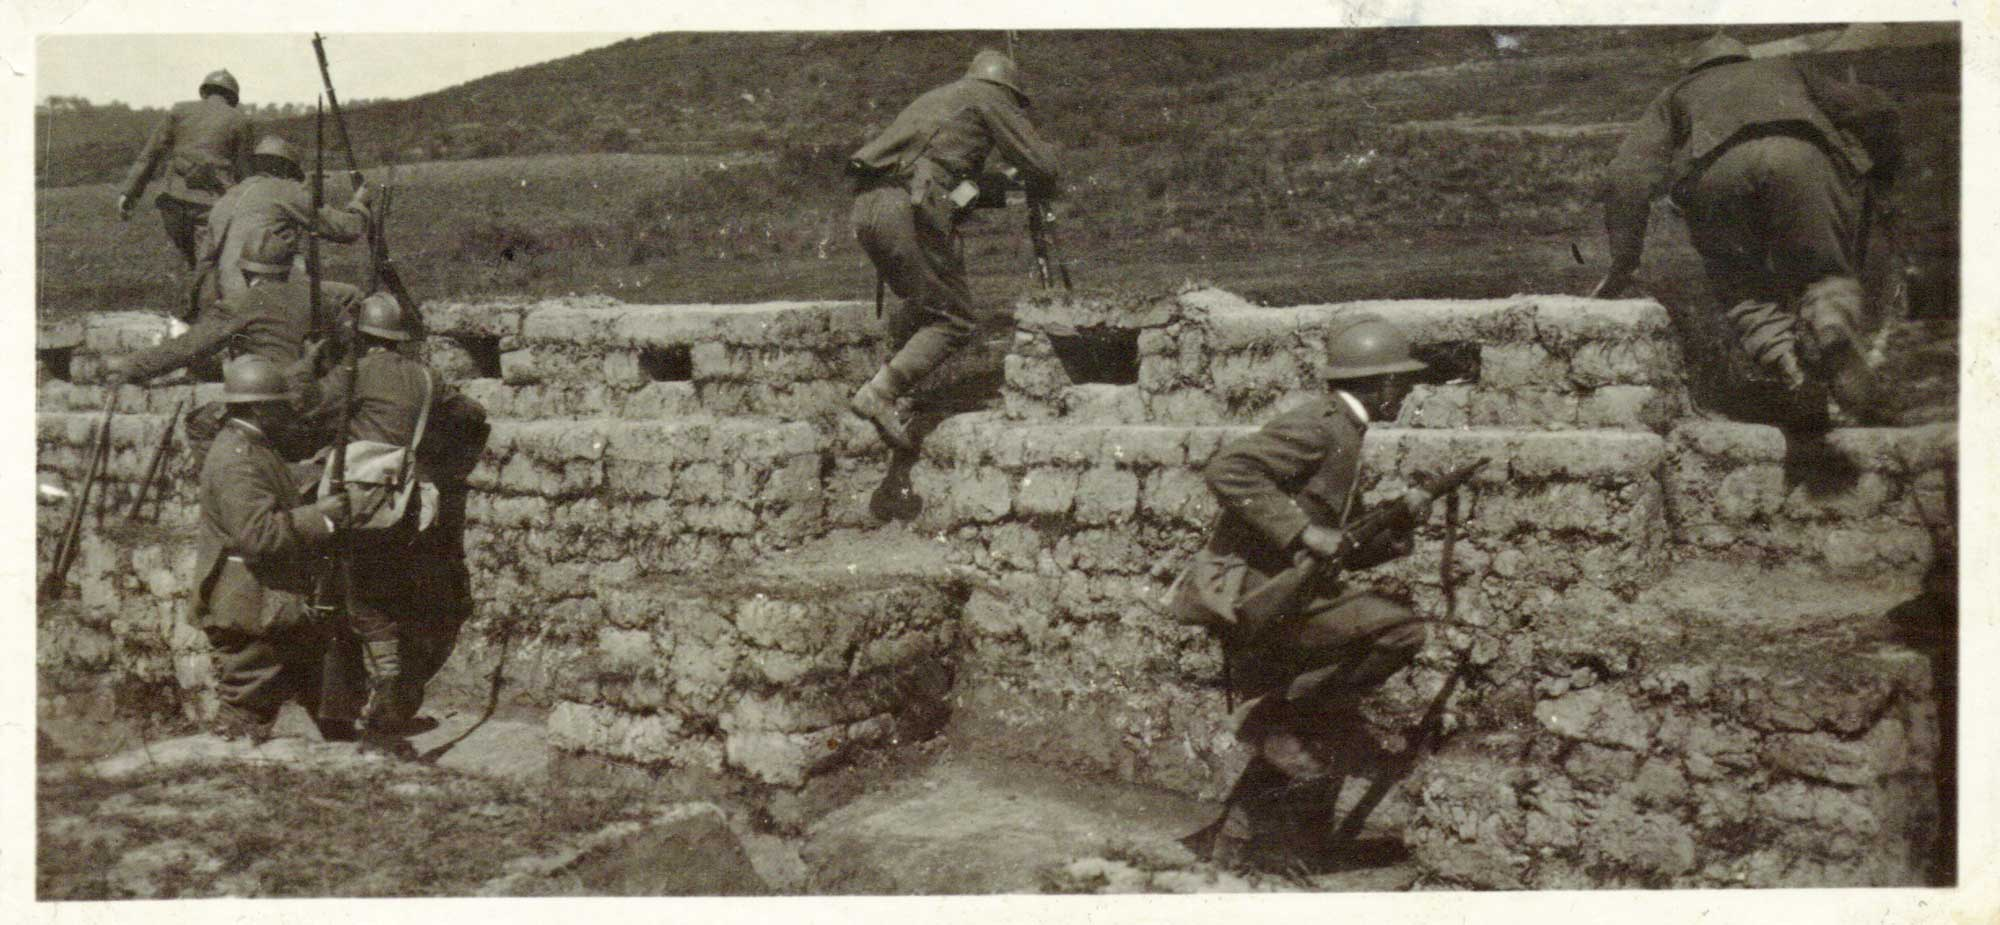 Italian soldiers leave a trench to begin an assault, 1917.